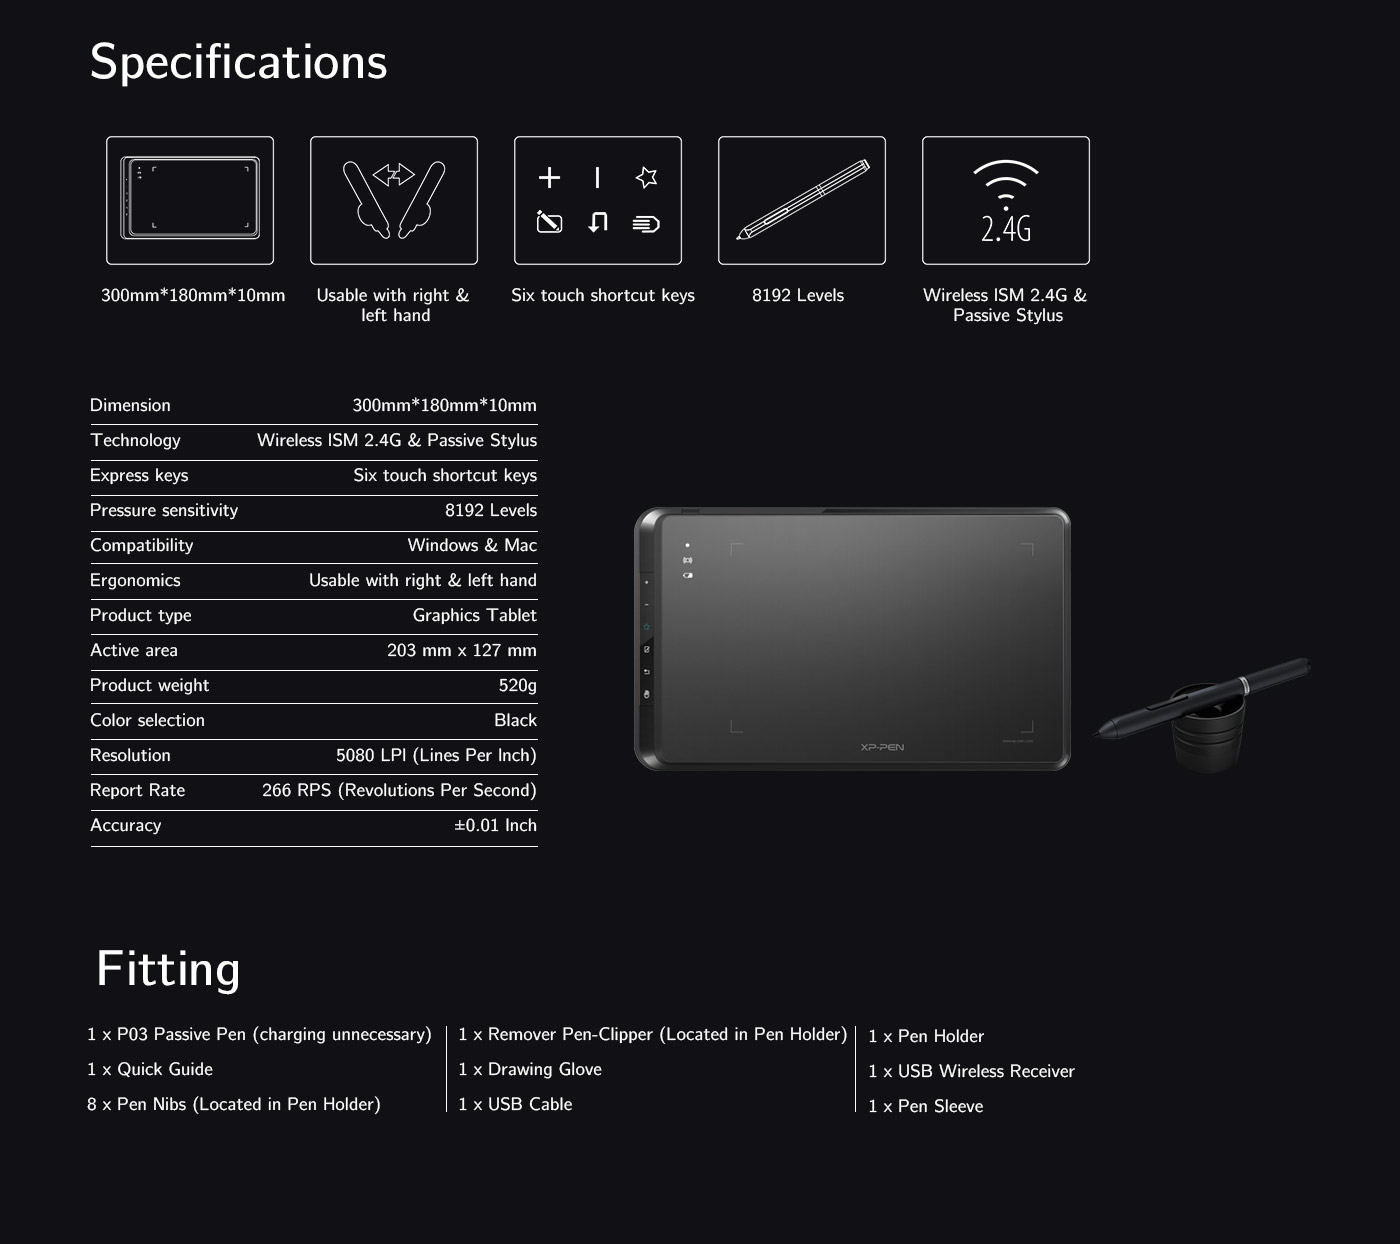 Specifications and fitting of XP-Pen Star 05 wireless drawing tablet